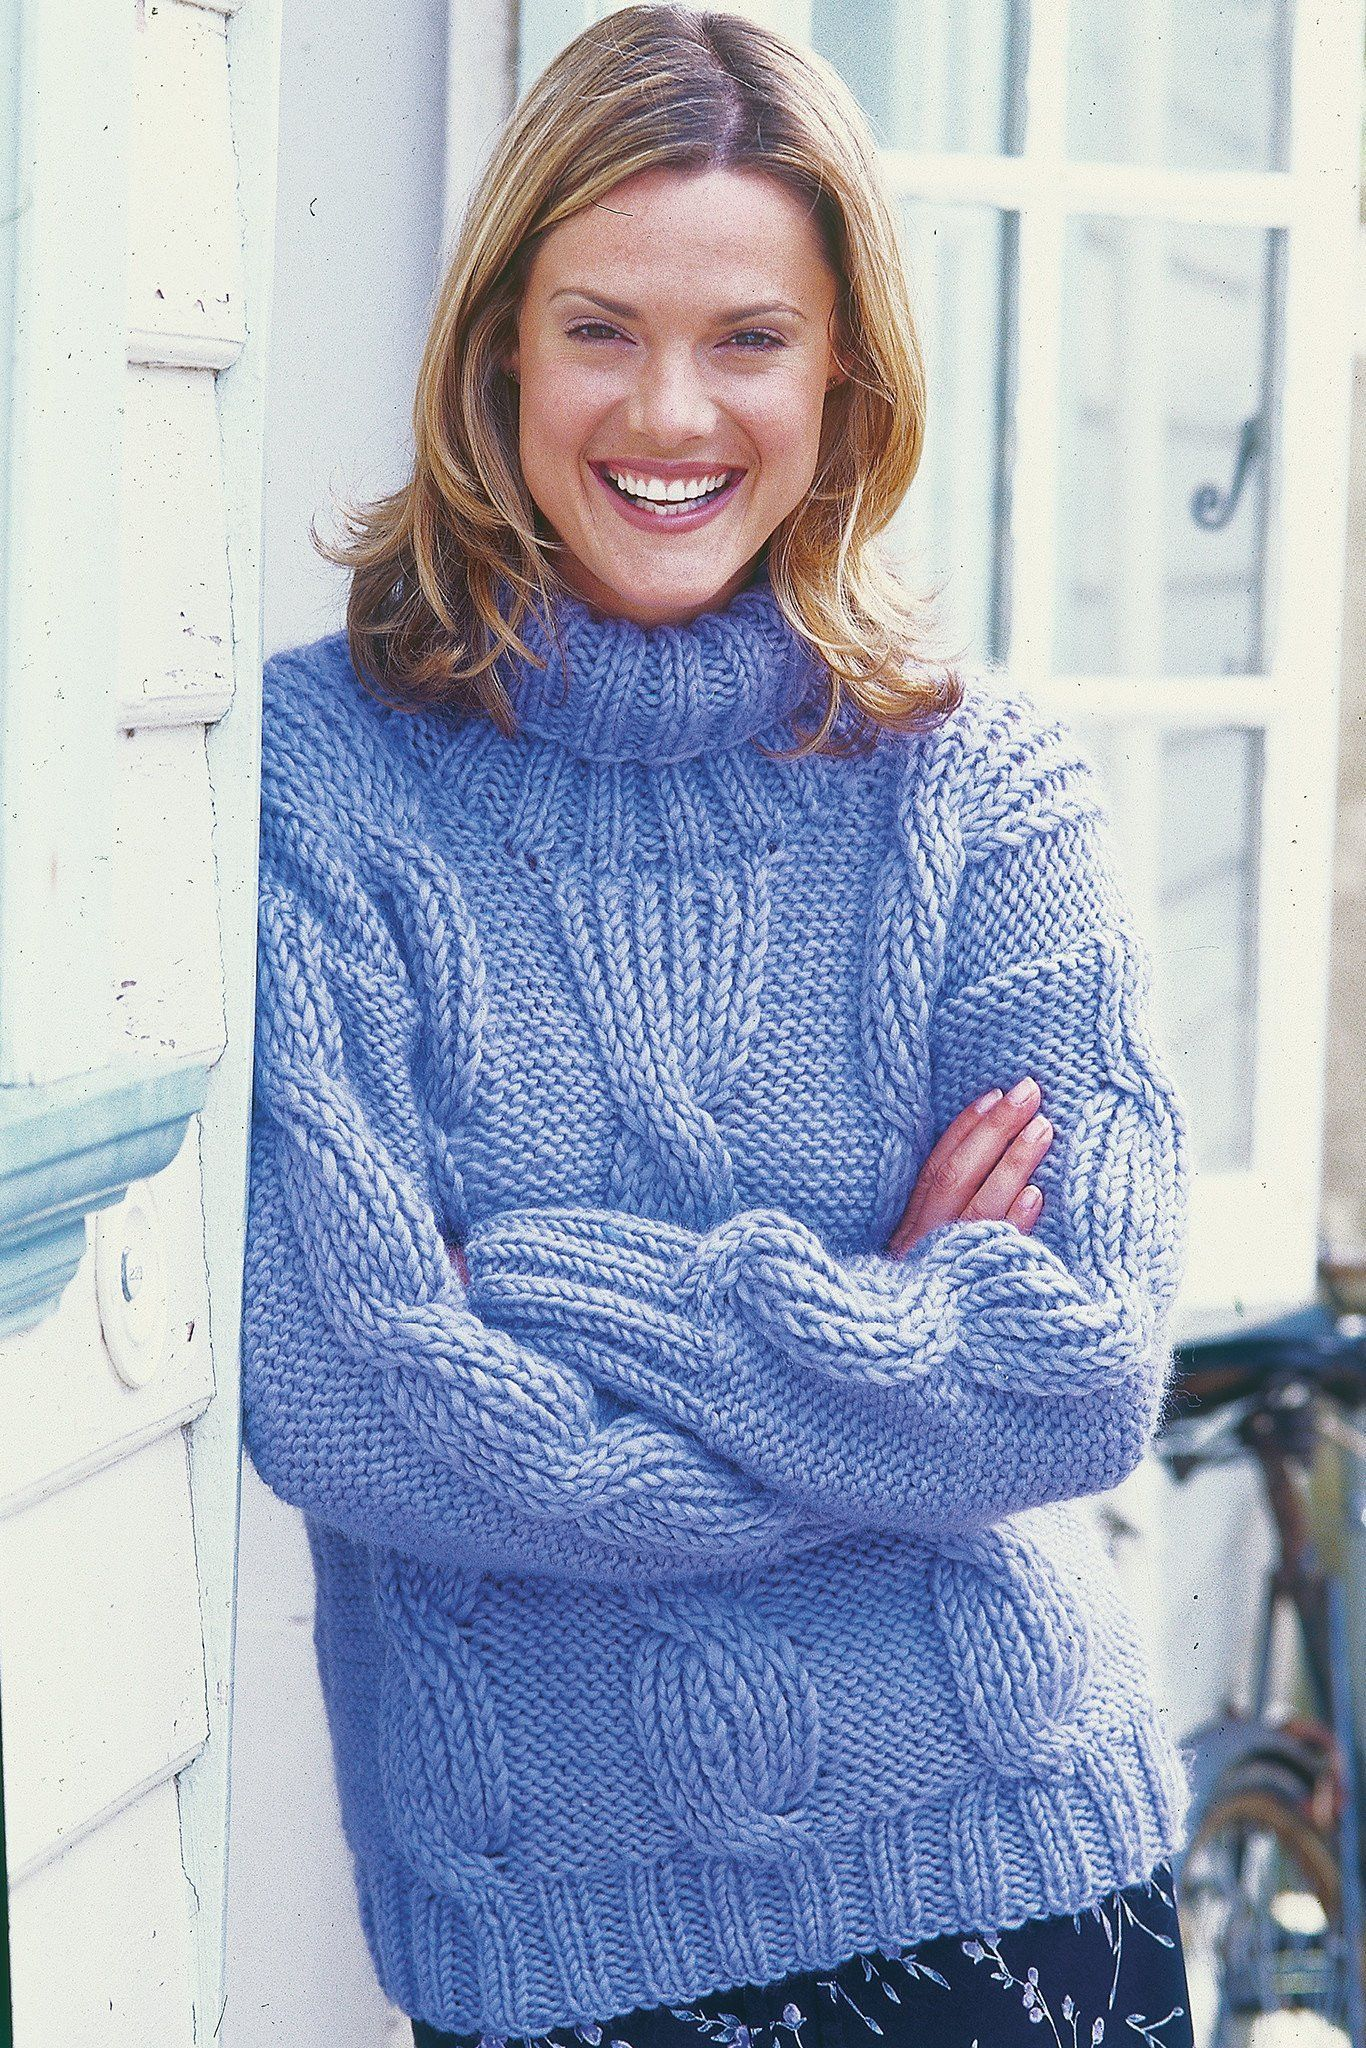 Womens Cable Roll Neck Jumper Knitting Pattern   The ...